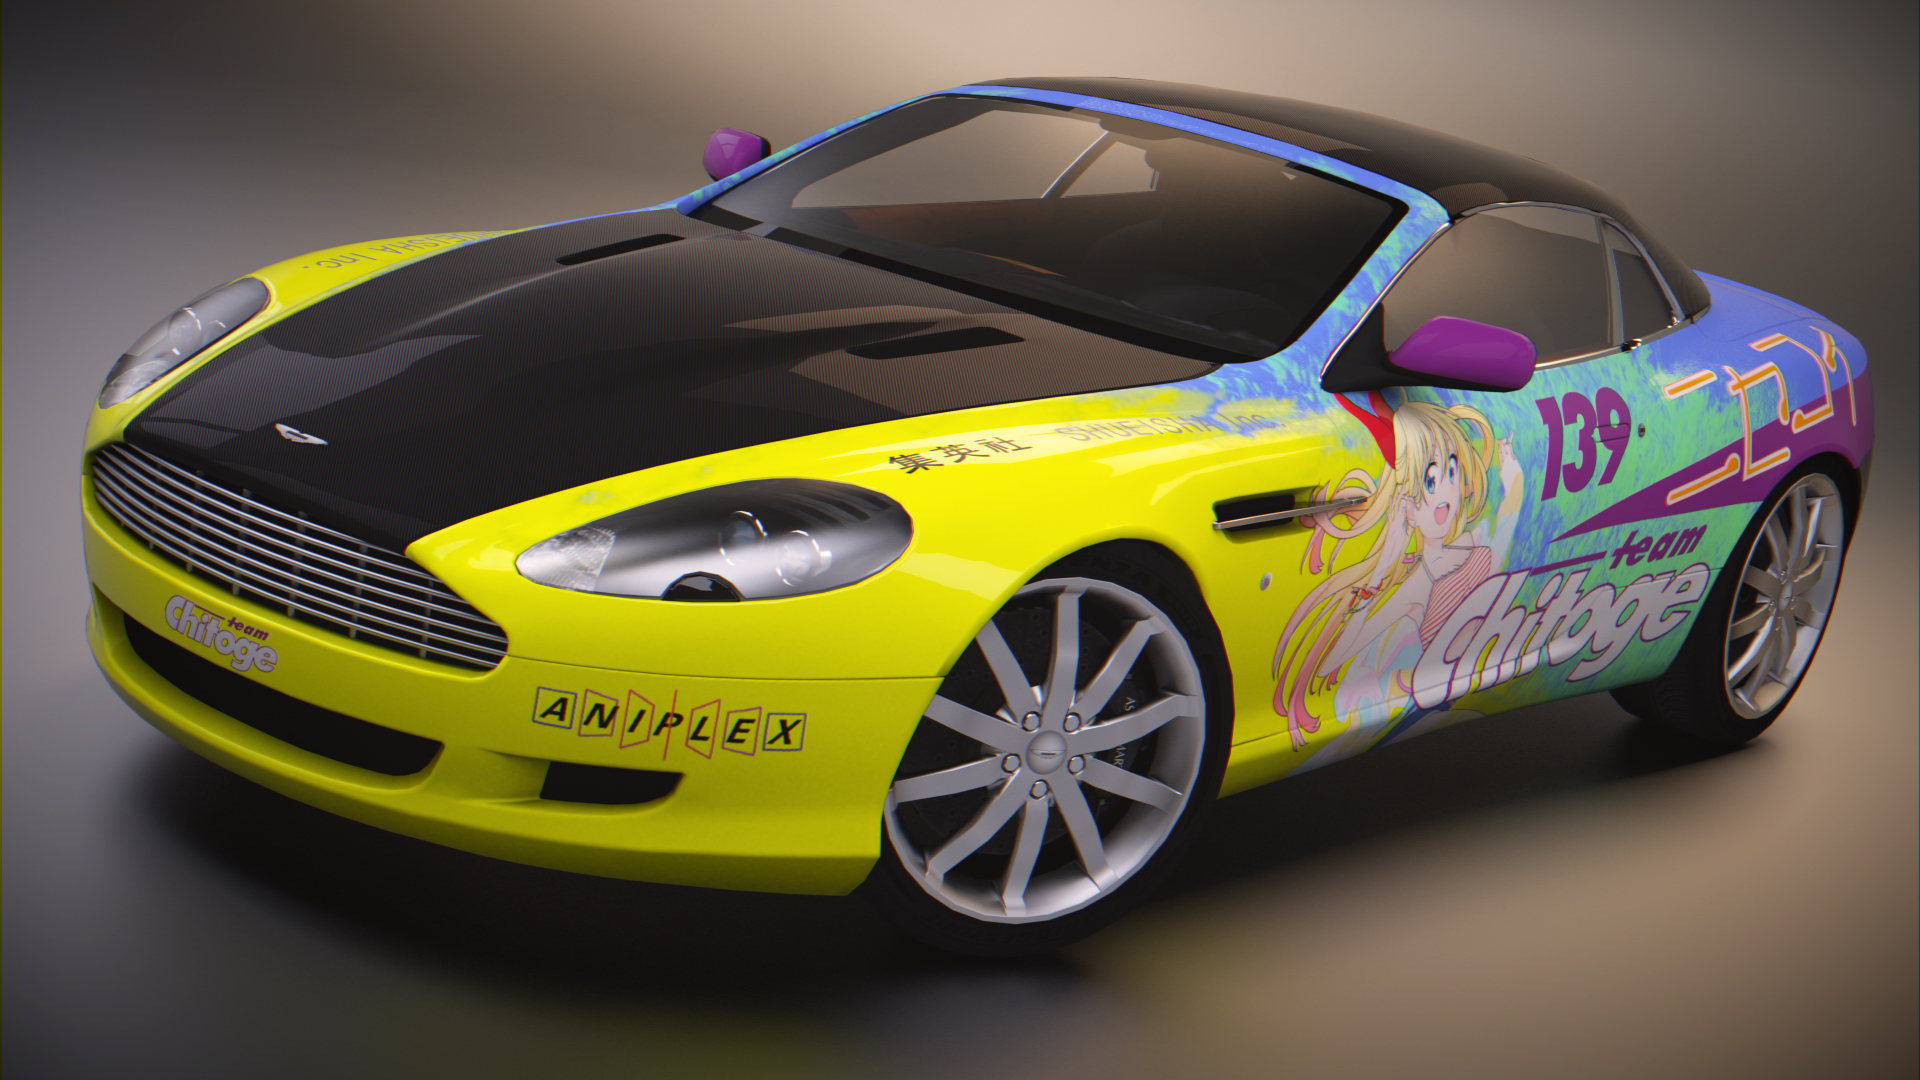 Aston Martin DB9 Volante (Hard Top) by BFG-9KRC